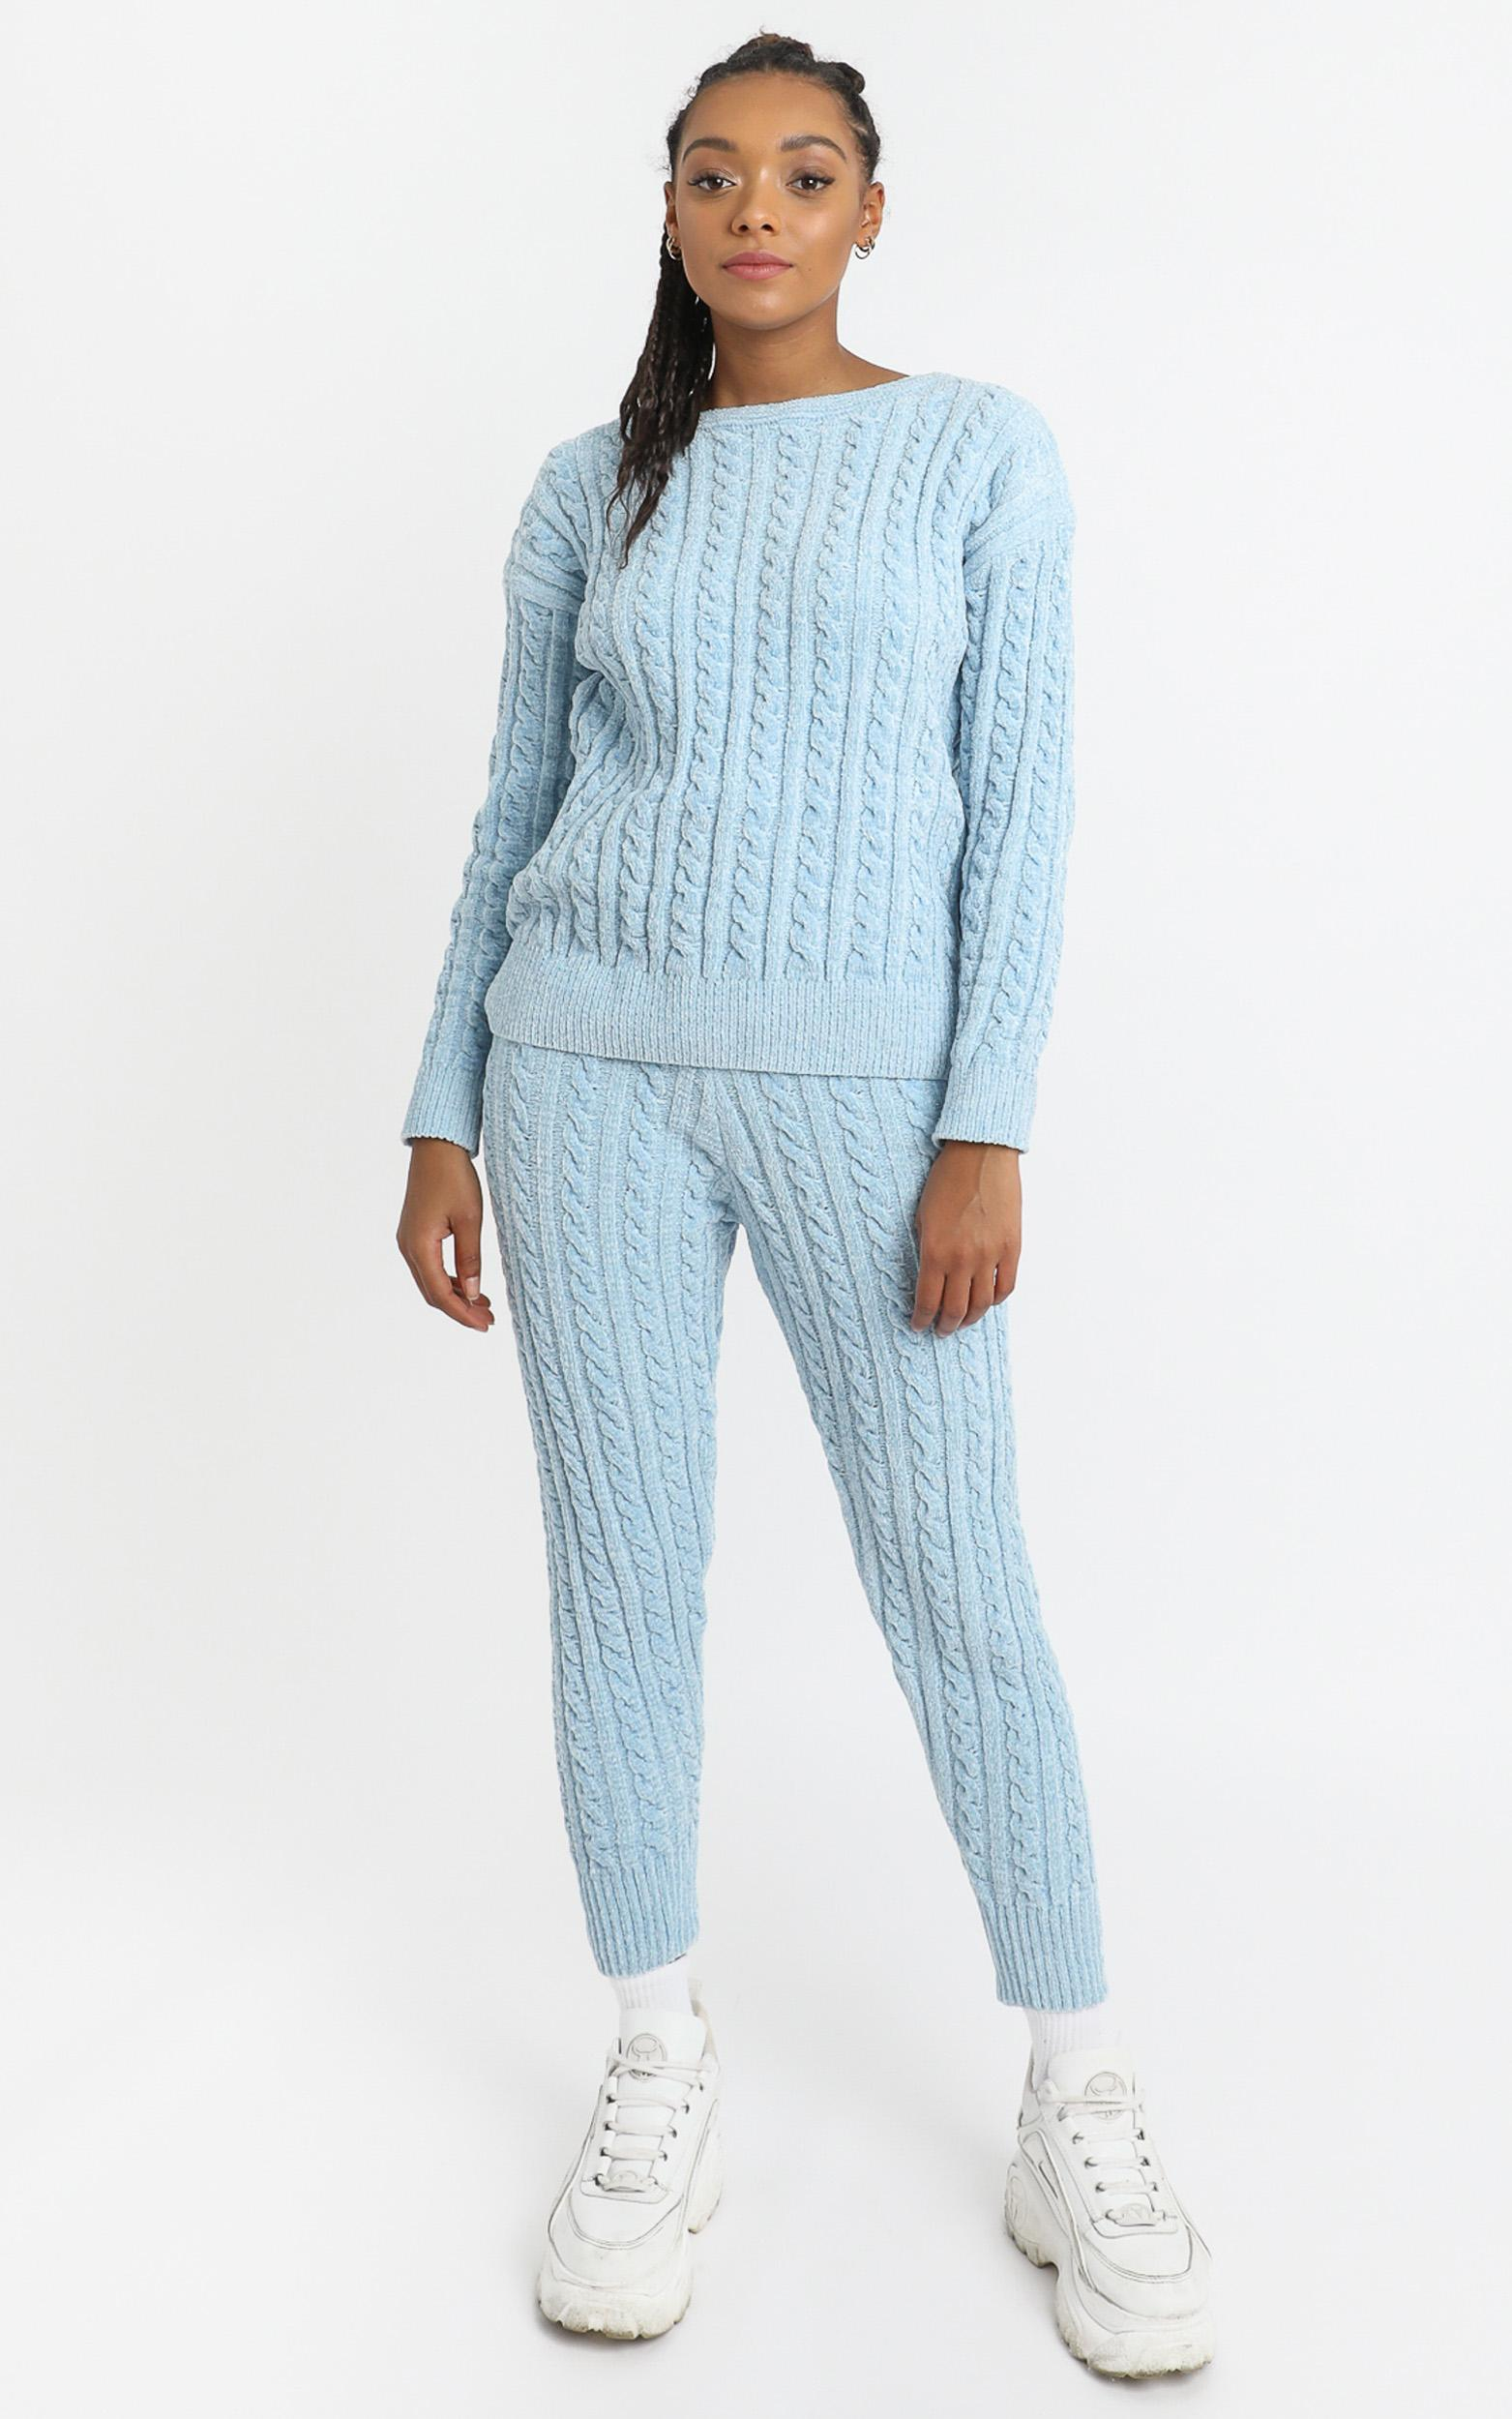 Iona Cable Knit Two Piece Set in Blue - S, Blue, hi-res image number null